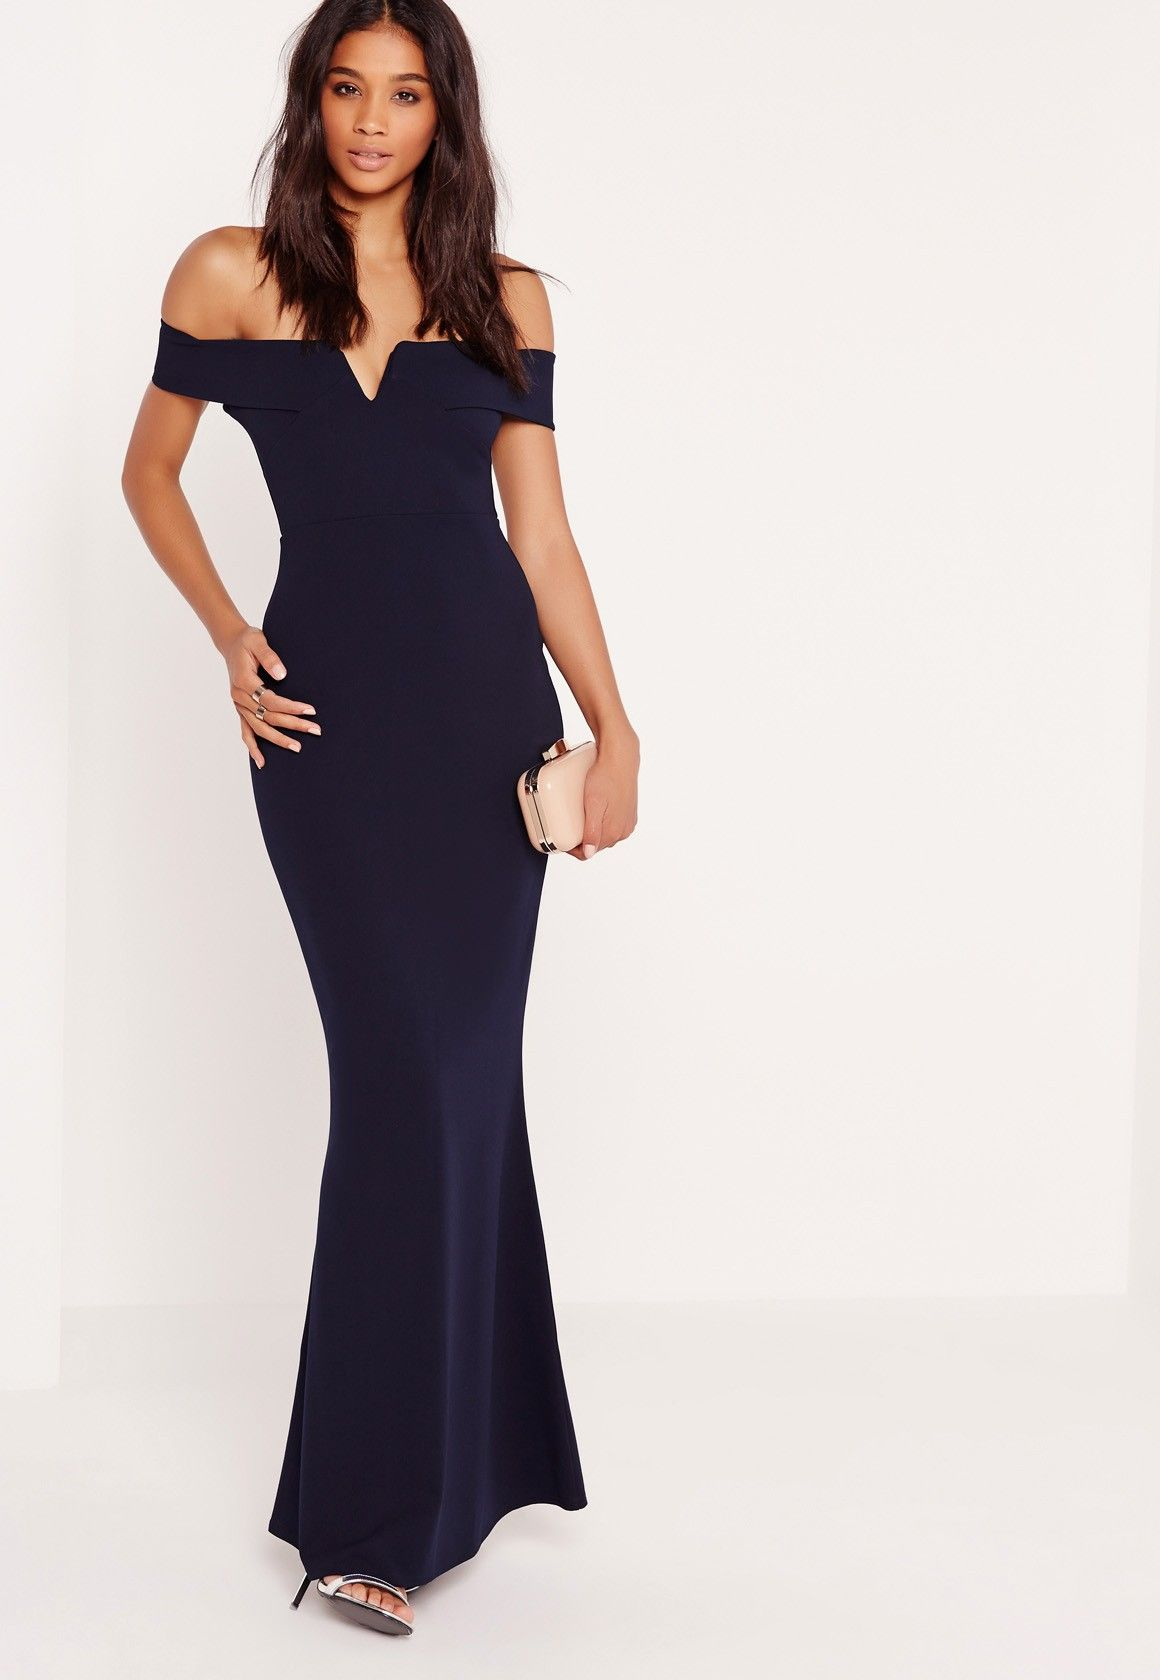 6b1f1f07084e Max out your wardrobe and own the night in this babin  beaut! Featuring a  navy blue hue